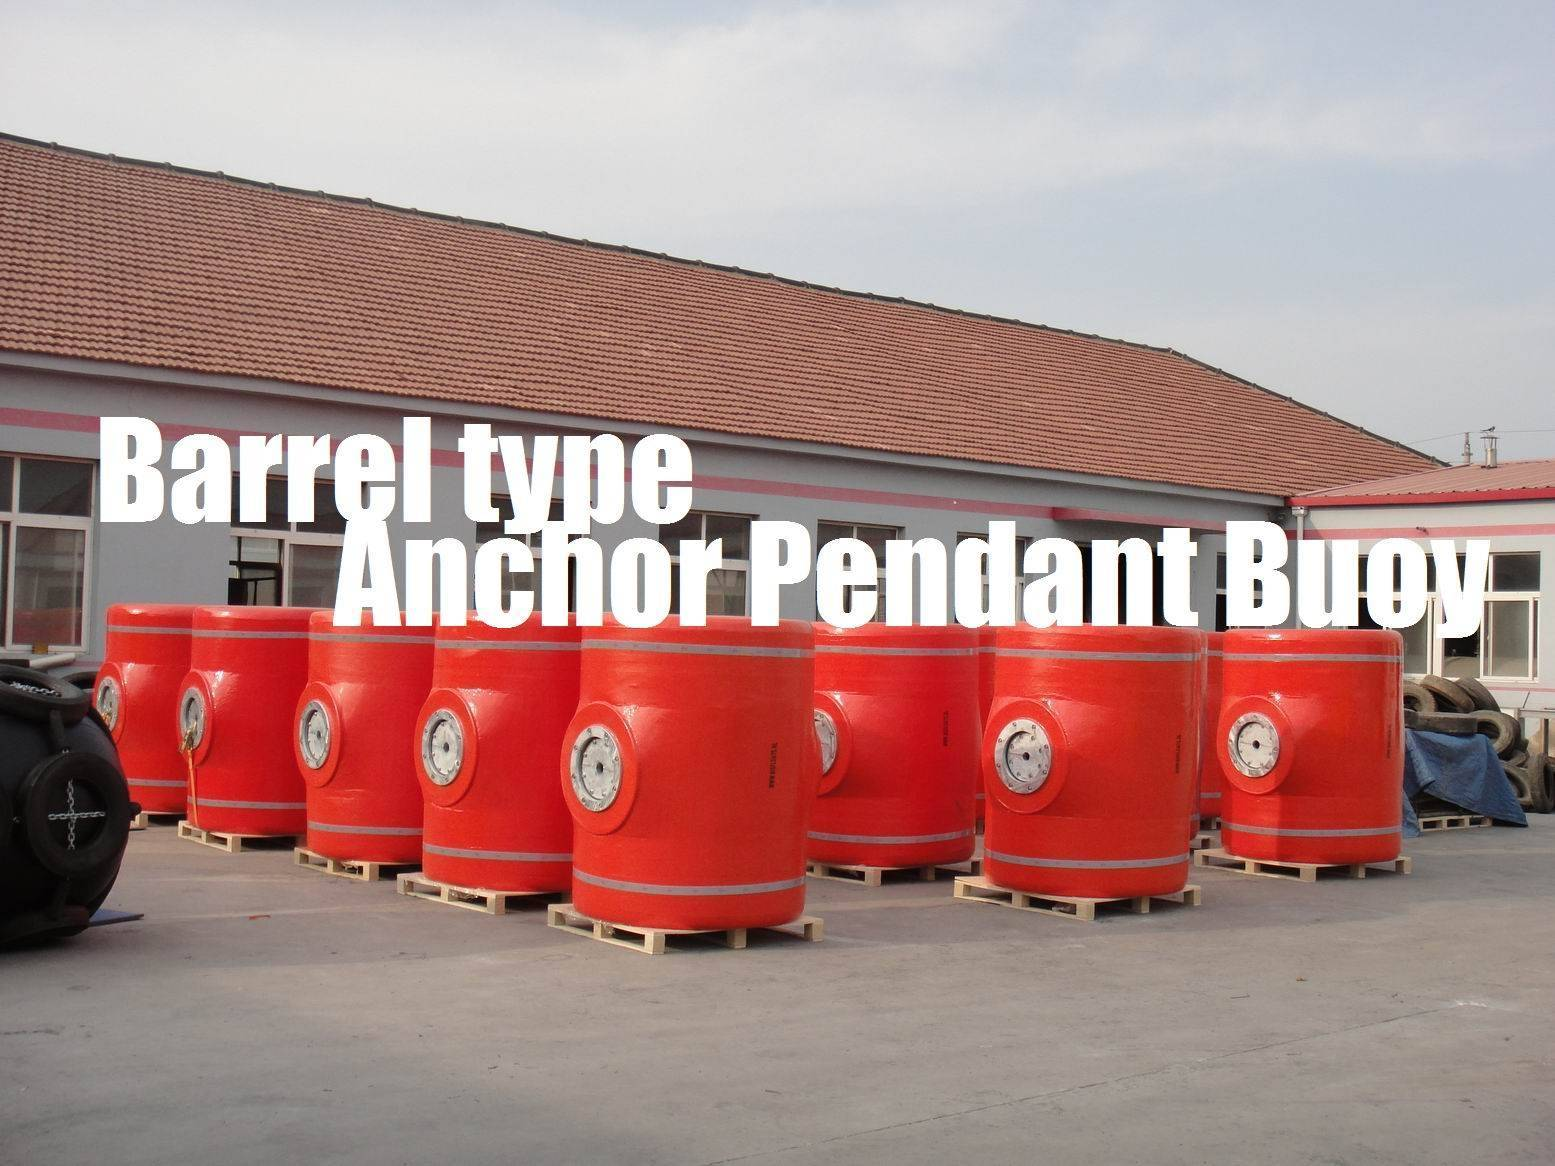 Barrel type Anchor Pendant Buoy with Crucifix, General Surface Buoy